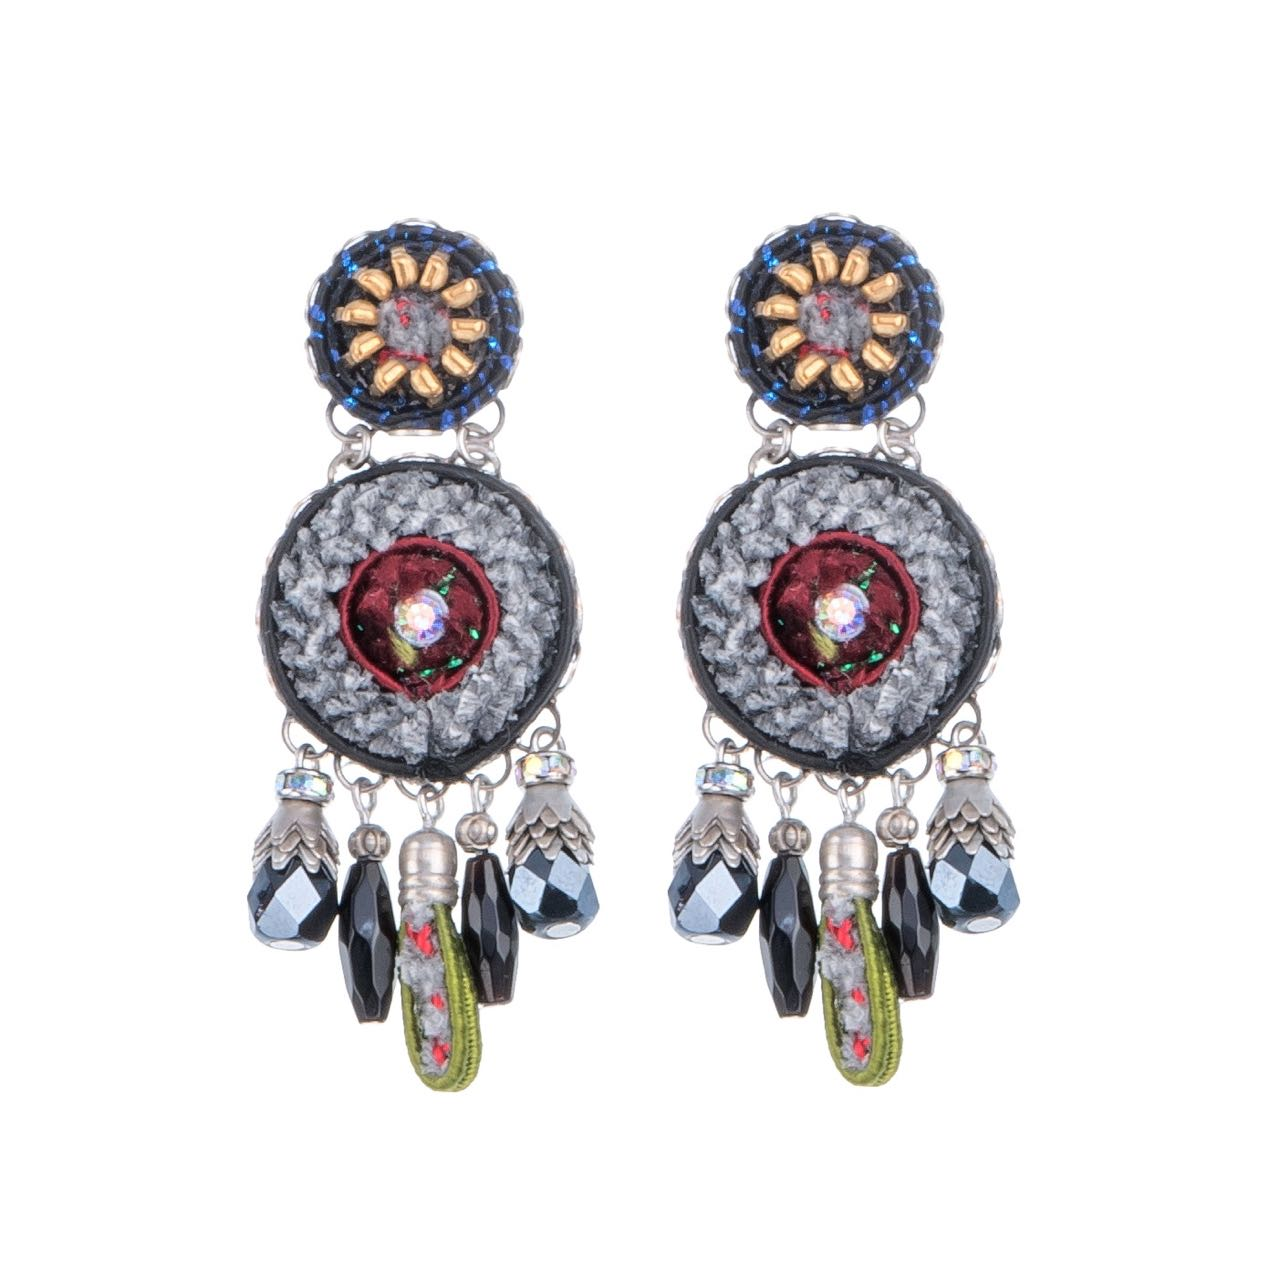 7503 Ayala Bar Earrings Nighthawk Buy Online